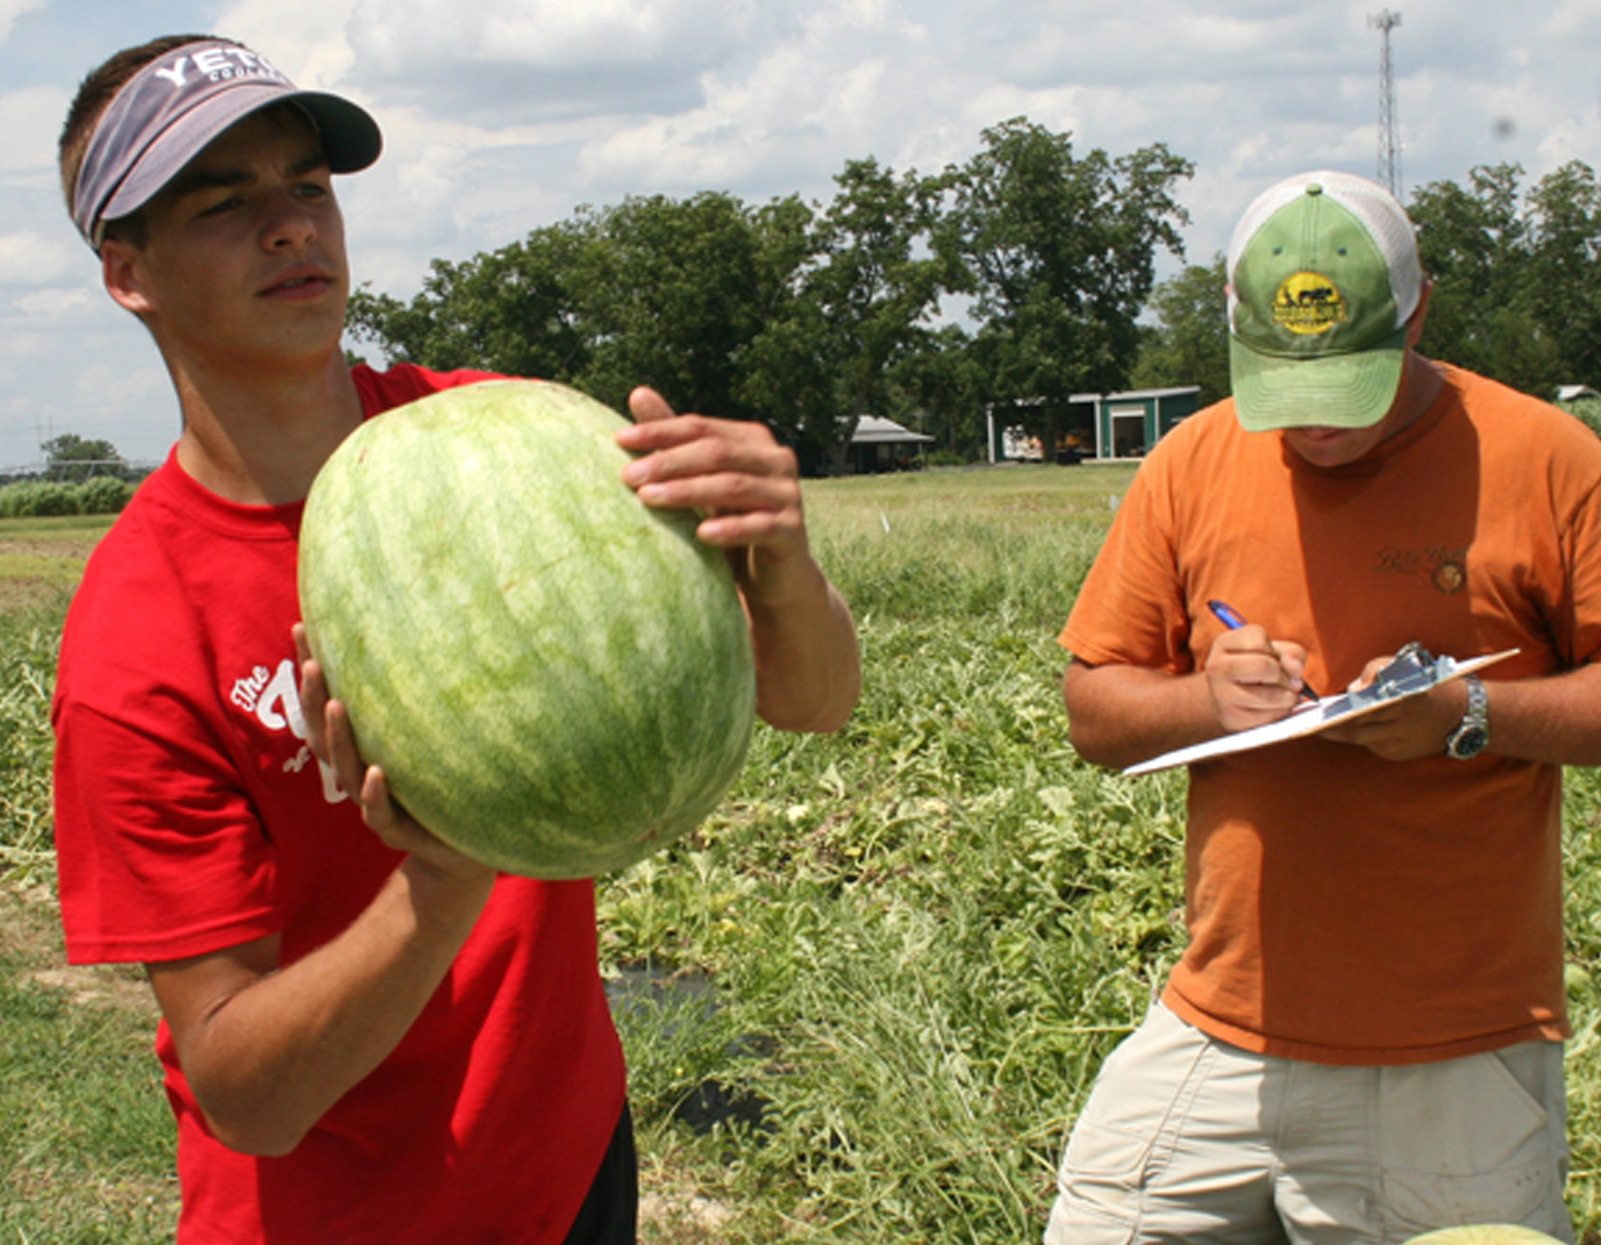 Beau Lamb tosses a watermelon into a truck, as Robert Ames writes down its weight while working at the UGA Tifton Campus. The two student workers work for vegetable horticulturist Tim Coolong.